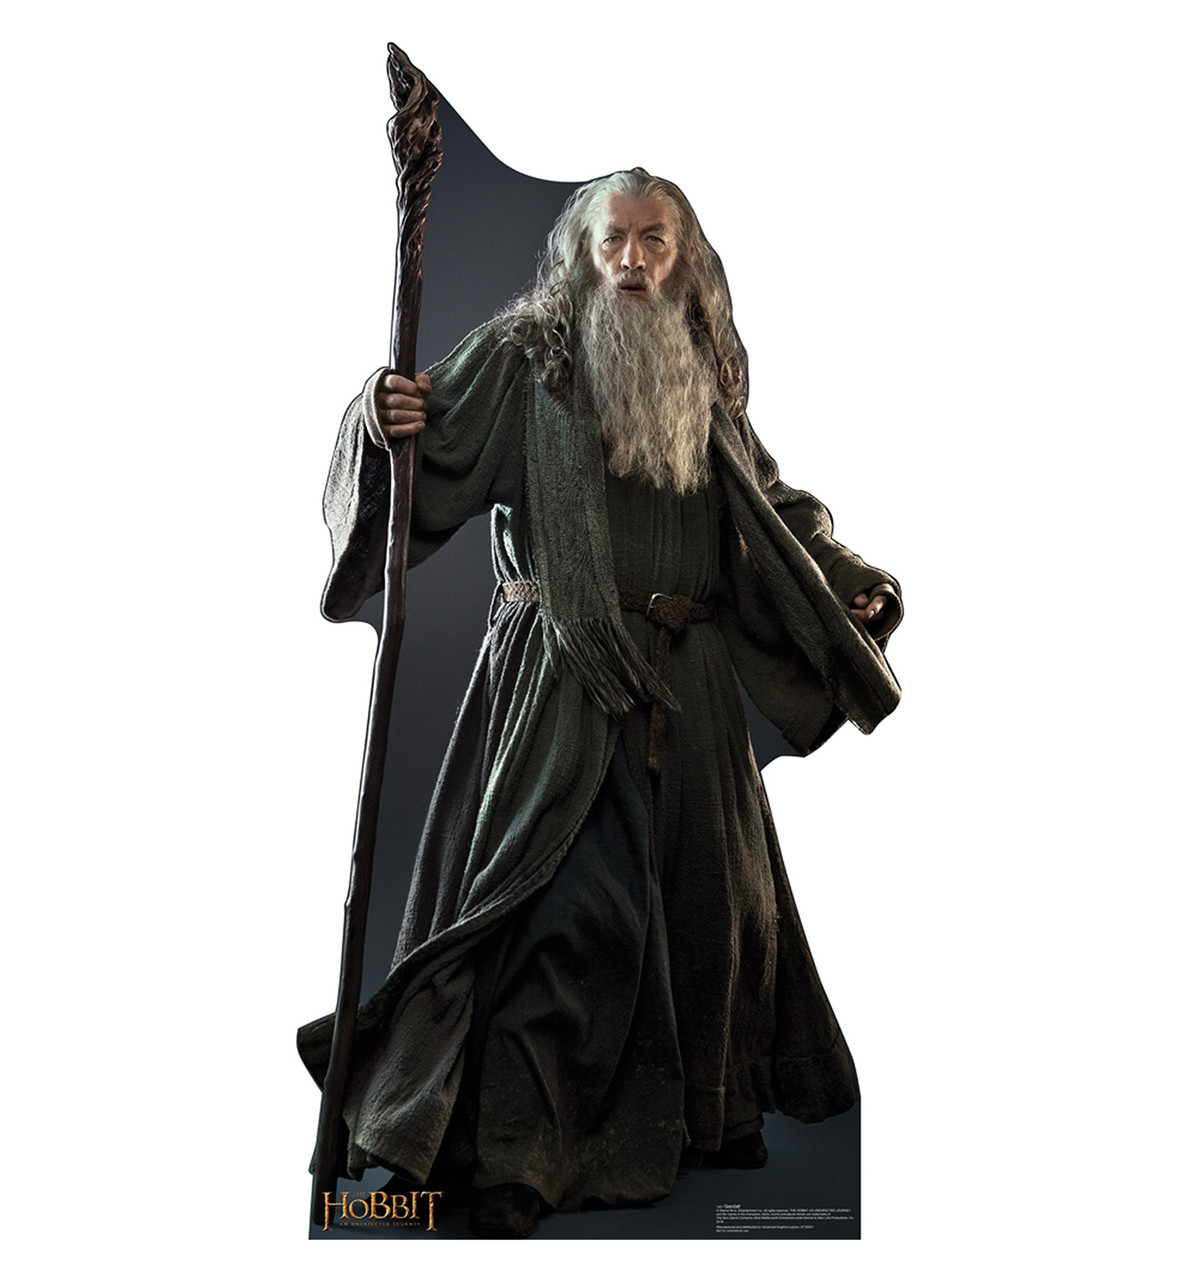 Life-size Gandalf - The Hobbit Cardboard Standup